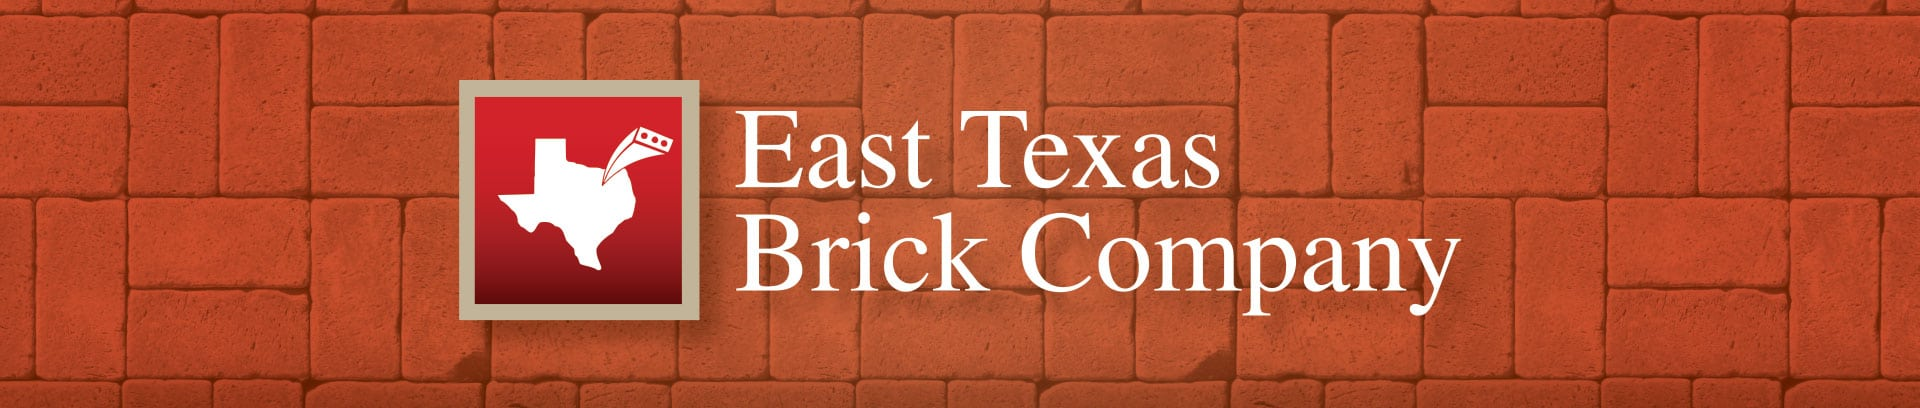 East Texas Brick Branded Campaign